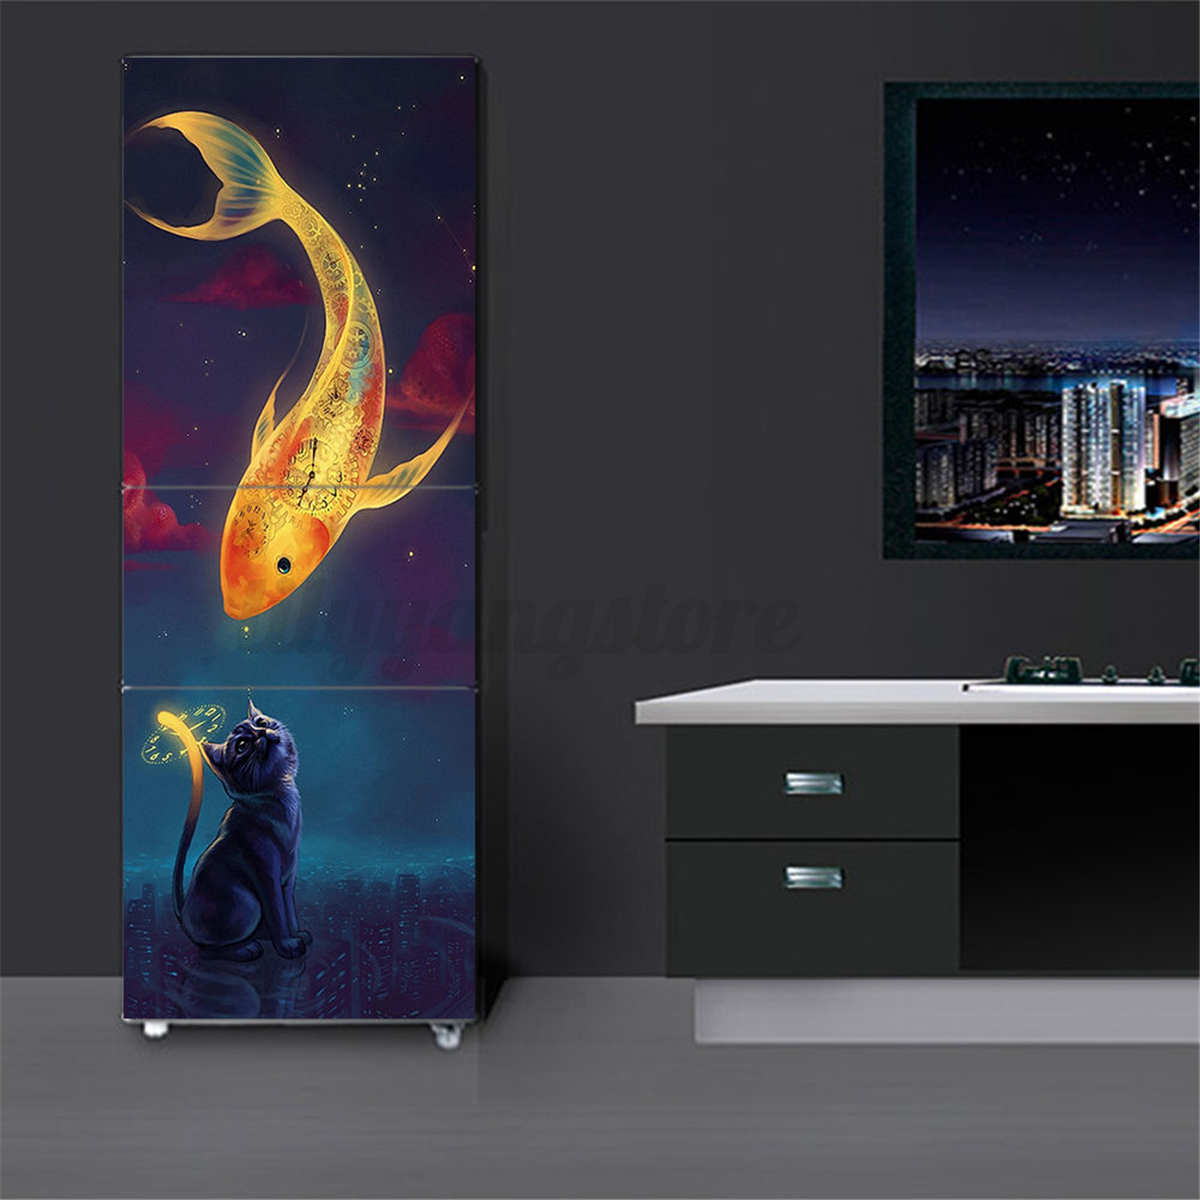 3d wall art sticker vinyl decal self adhesive door fridge wrap 3d wall art sticker vinyl decal self adhesive amipublicfo Gallery